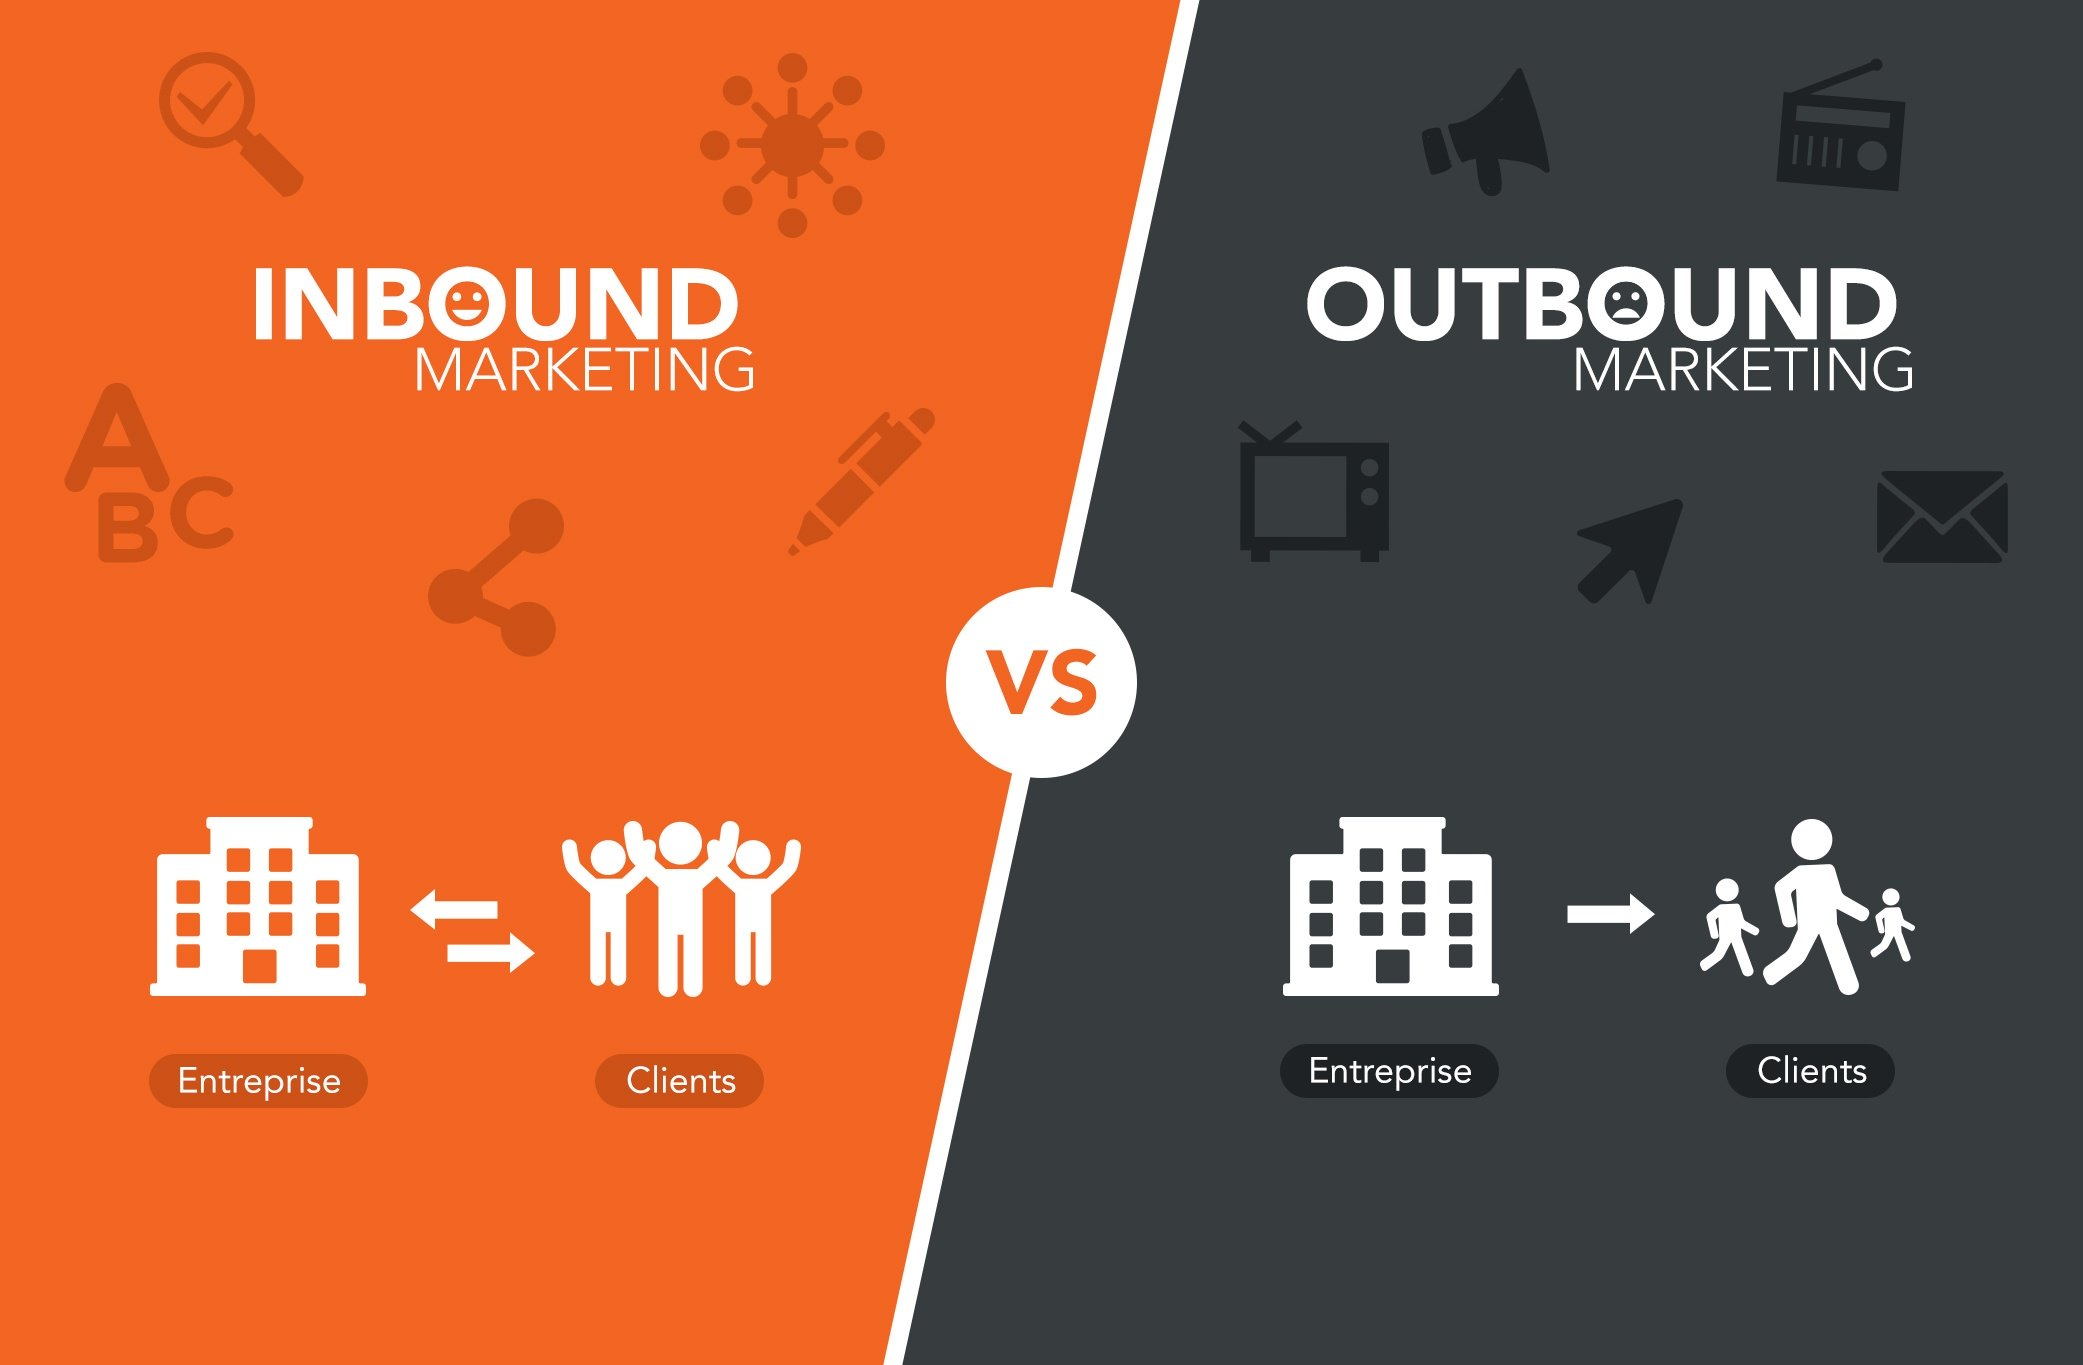 inbound-vs-outbound-marketing-strategies